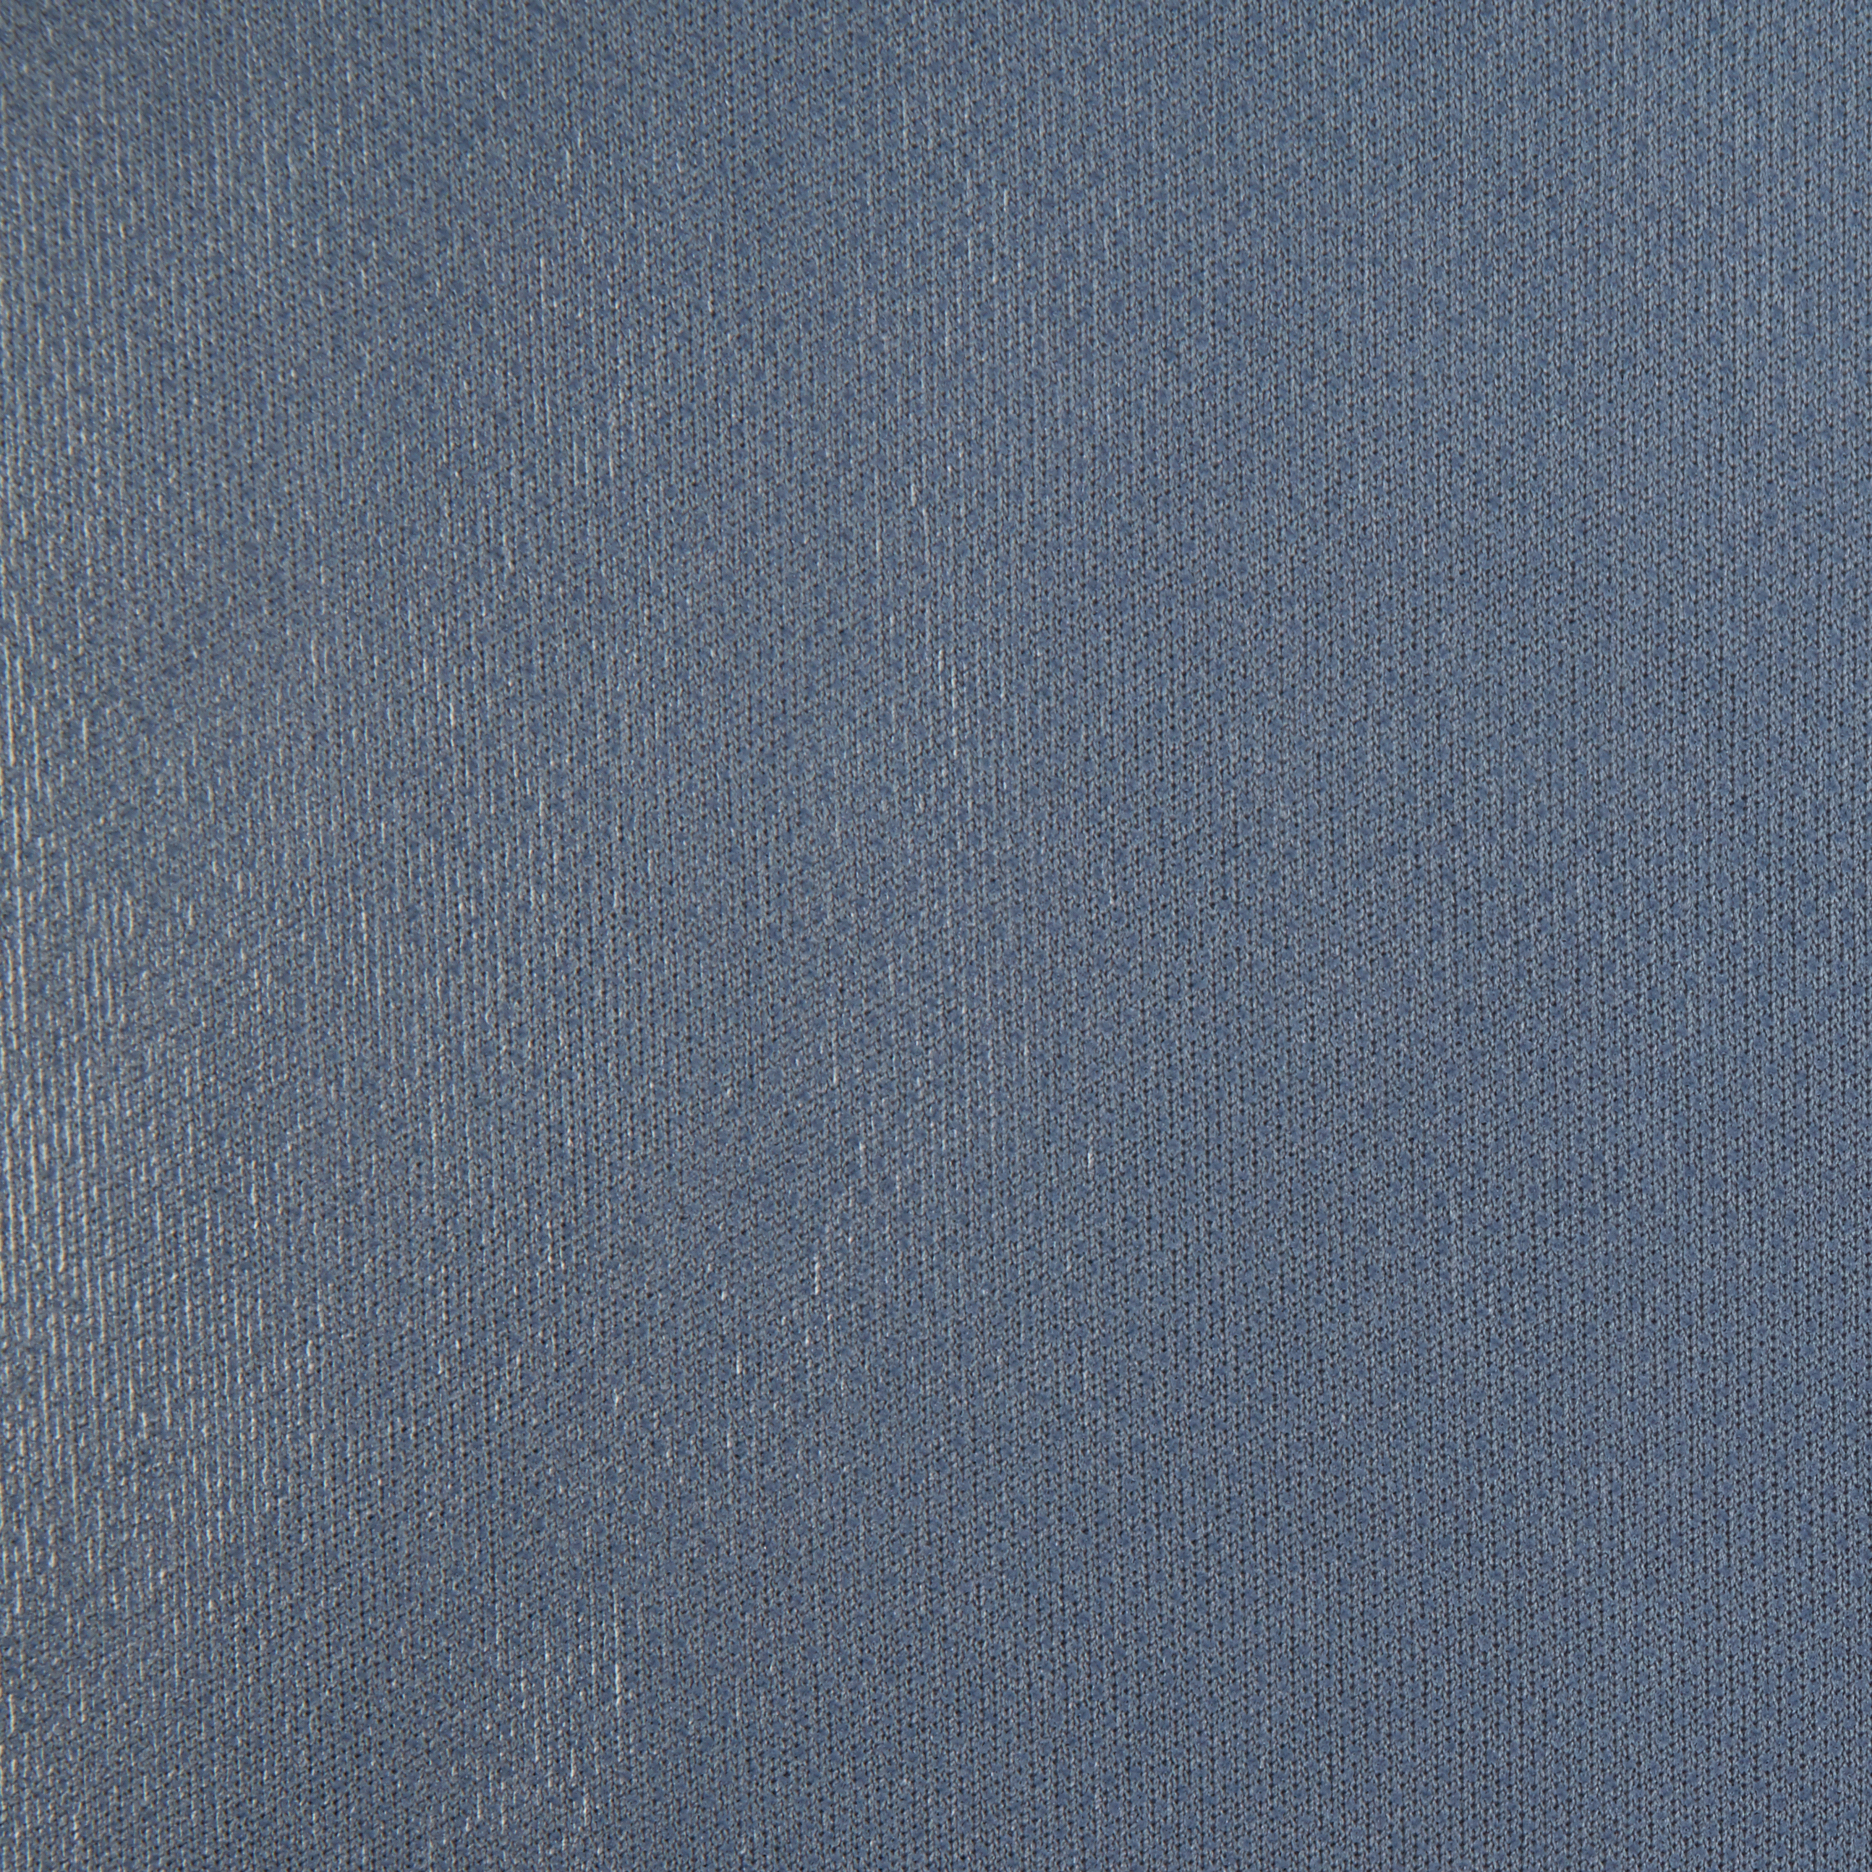 Image of PUL (Polyurethane Laminate) 1Mil Charcoal Fabric